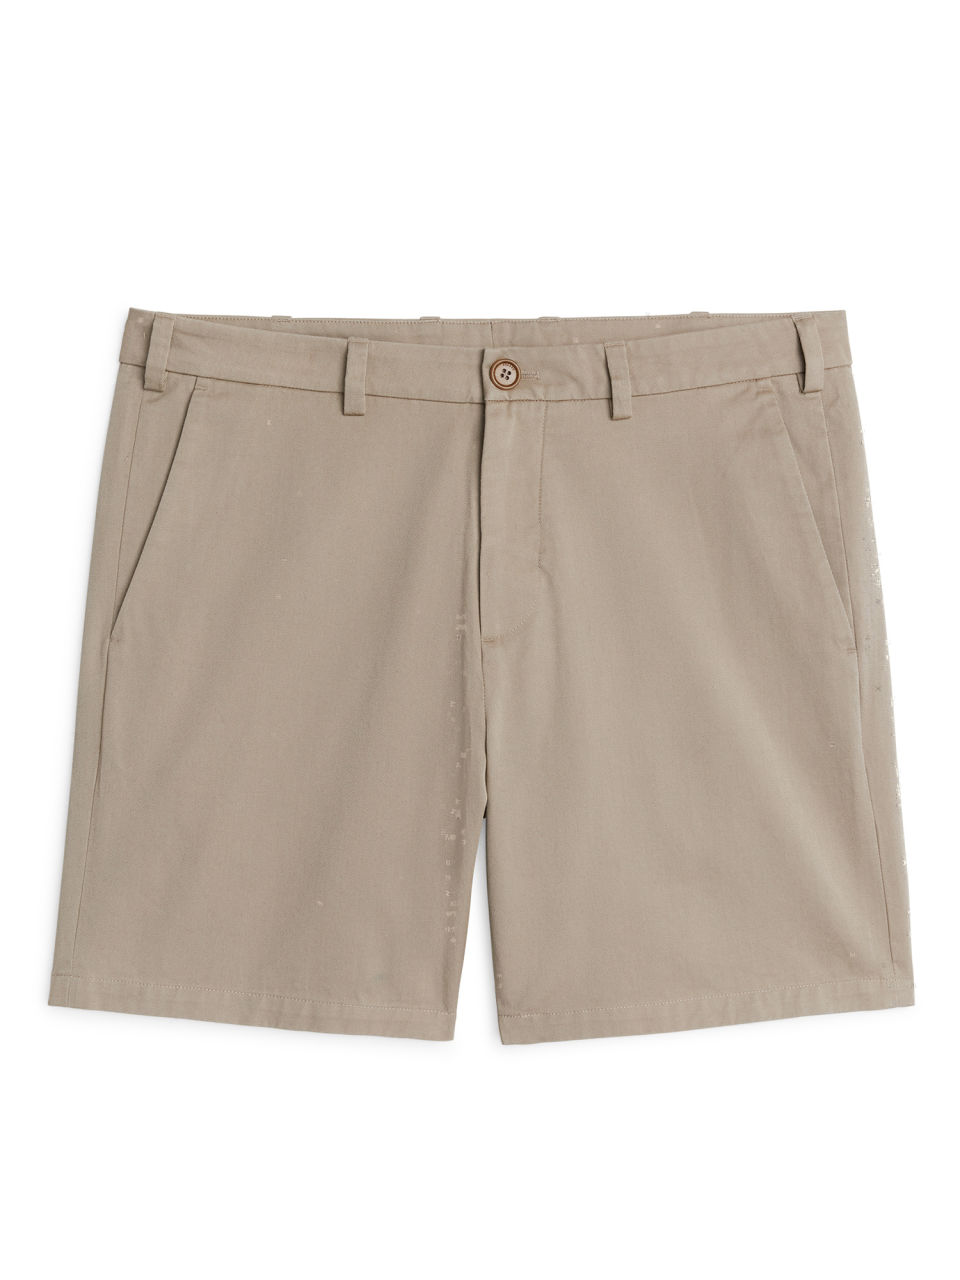 Front image of Arket organic cotton chino shorts in beige